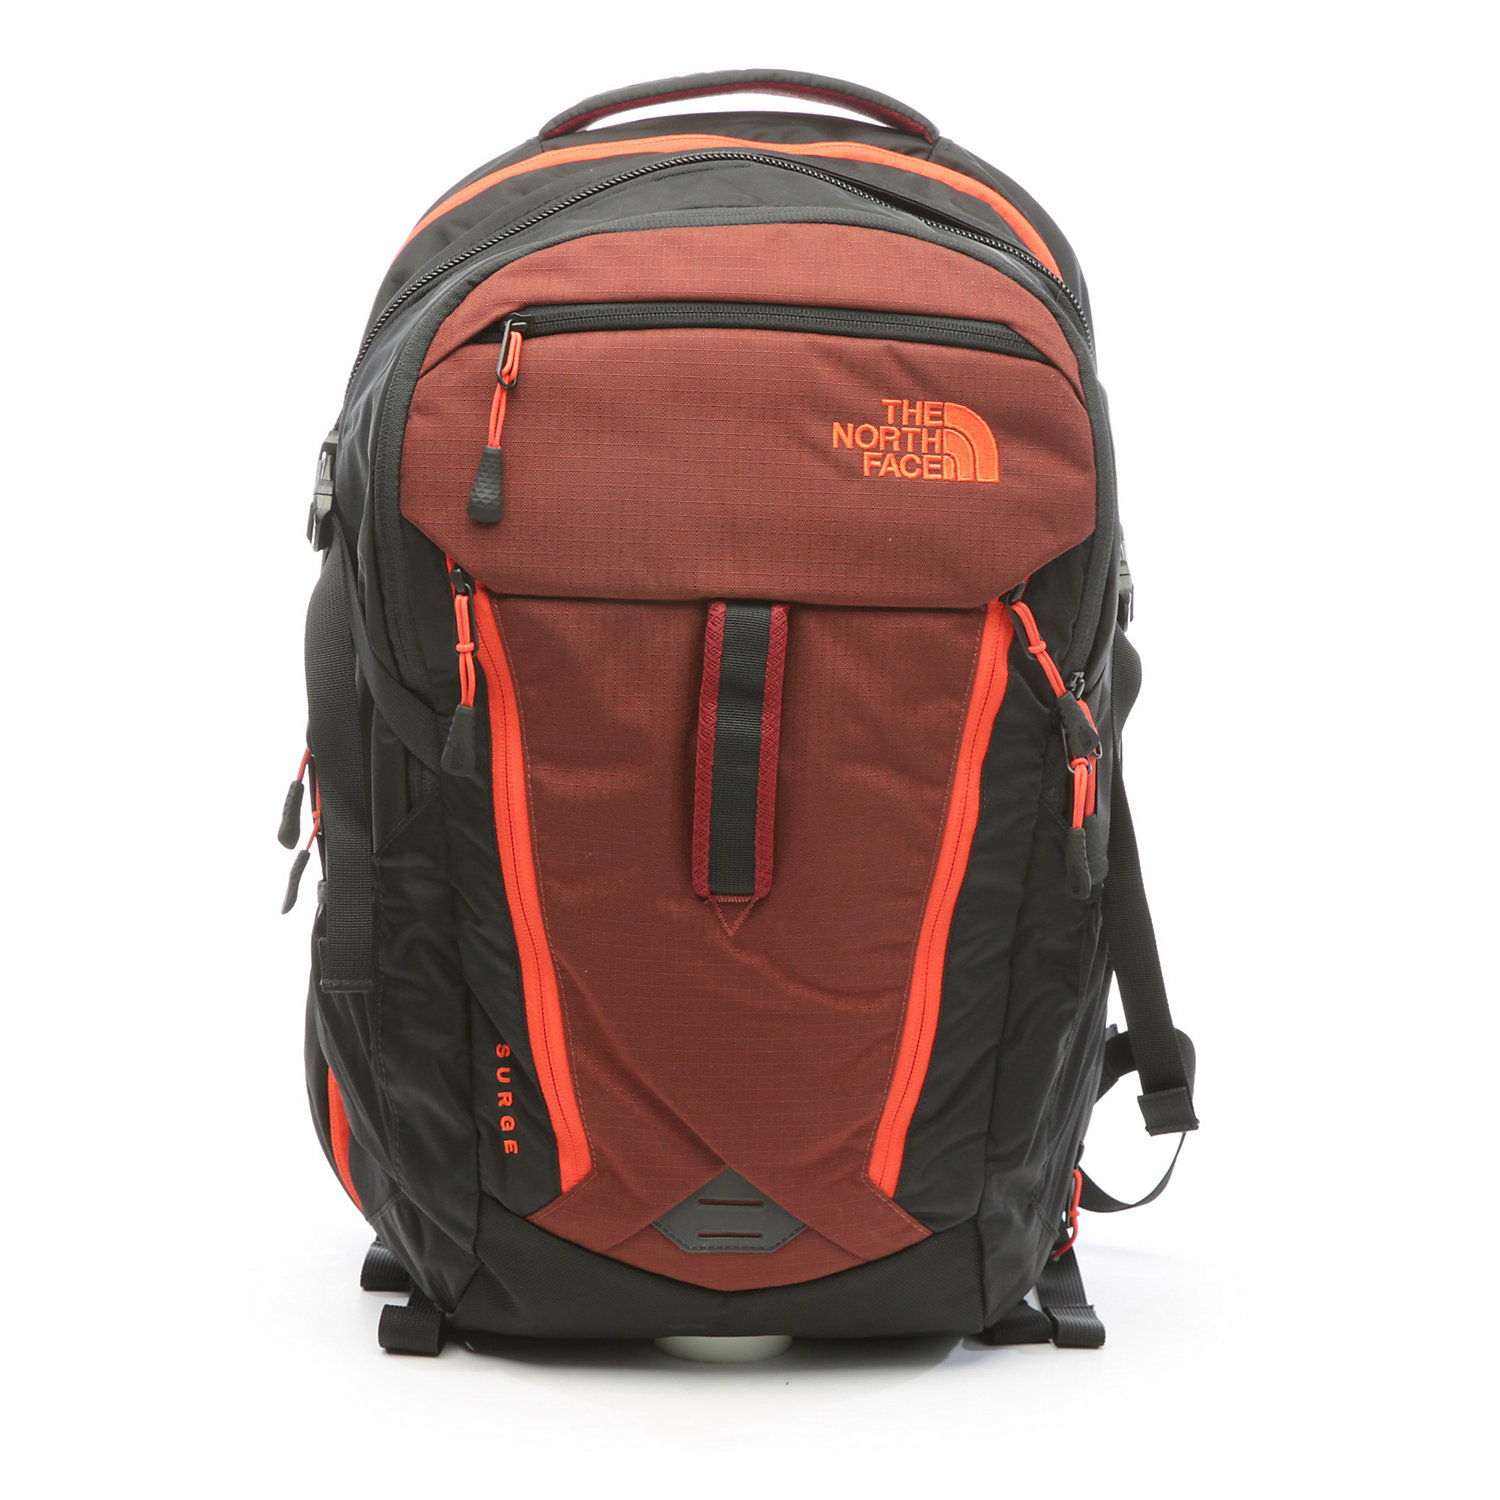 4628a1895 The North Face Surge Backpack